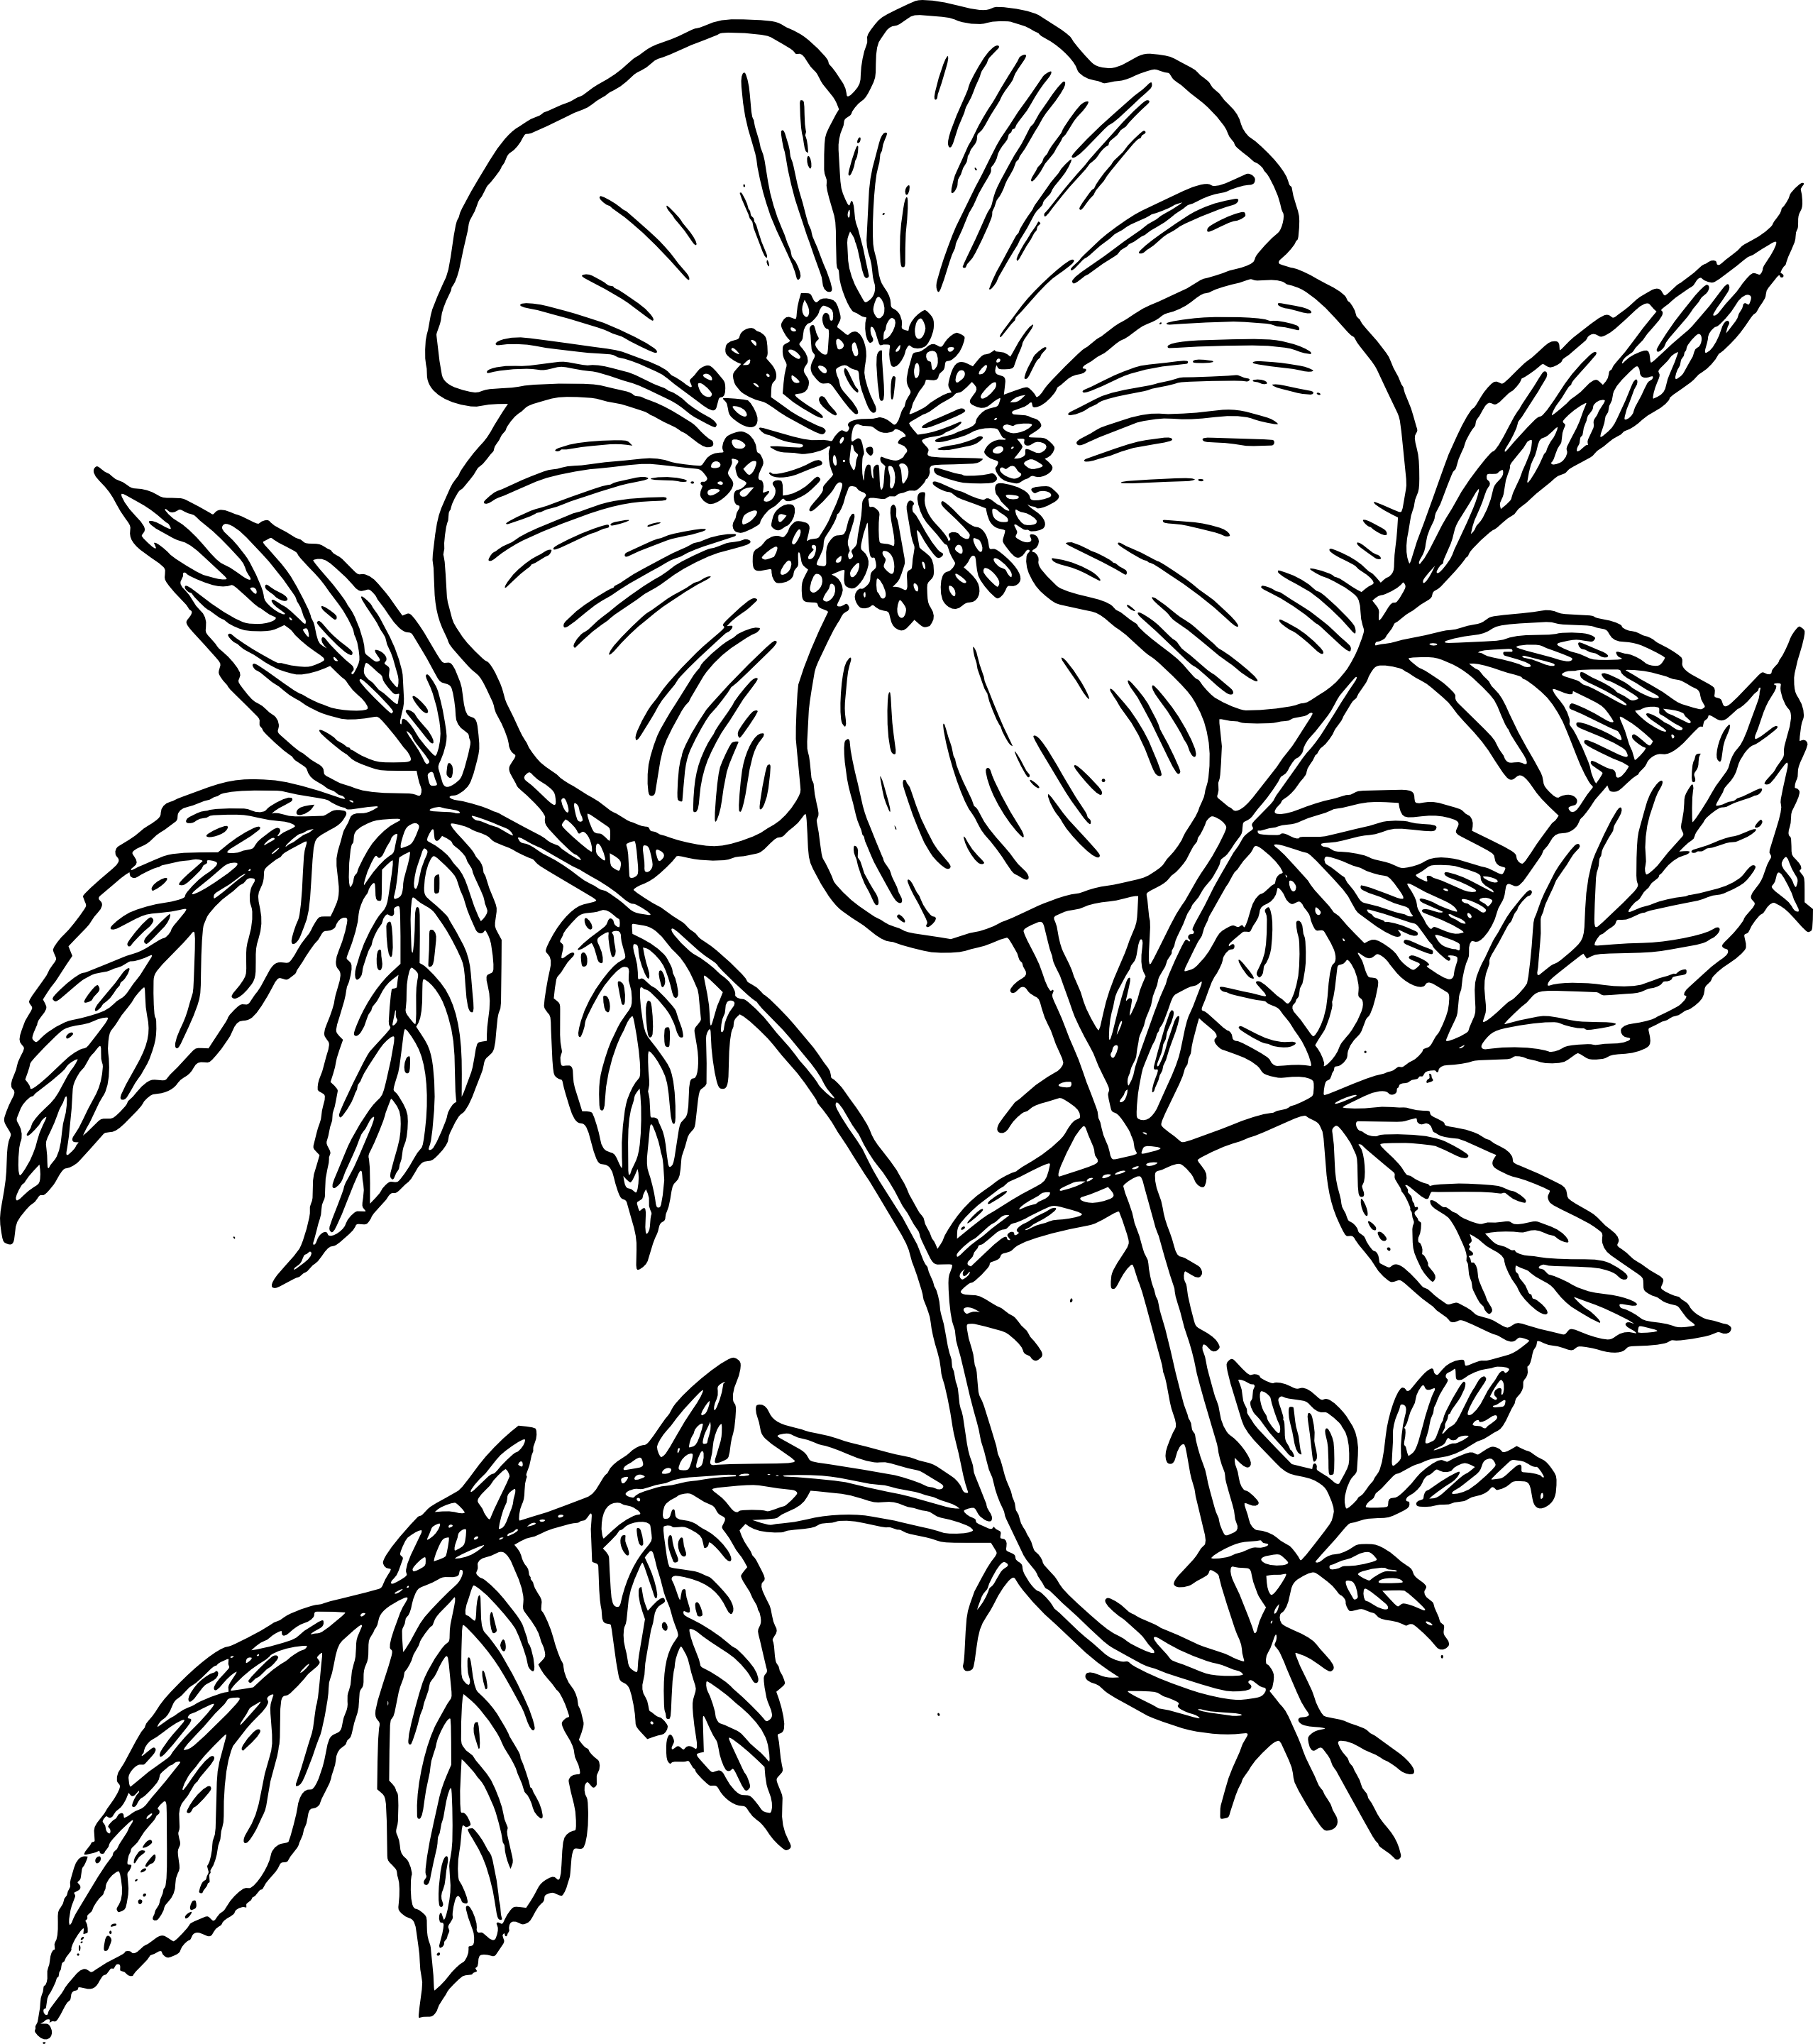 Thorn Vine Drawing